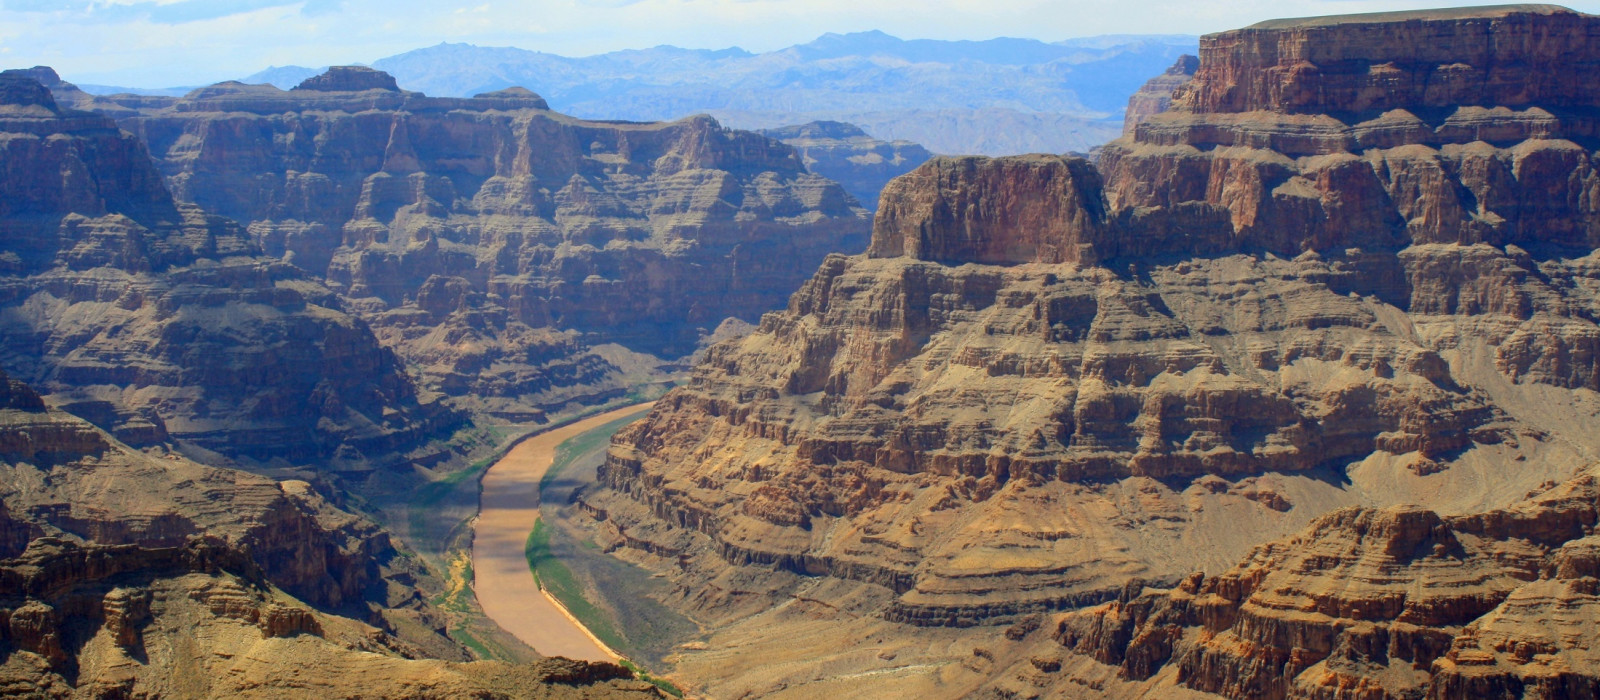 Destination Grand Canyon National Park USA